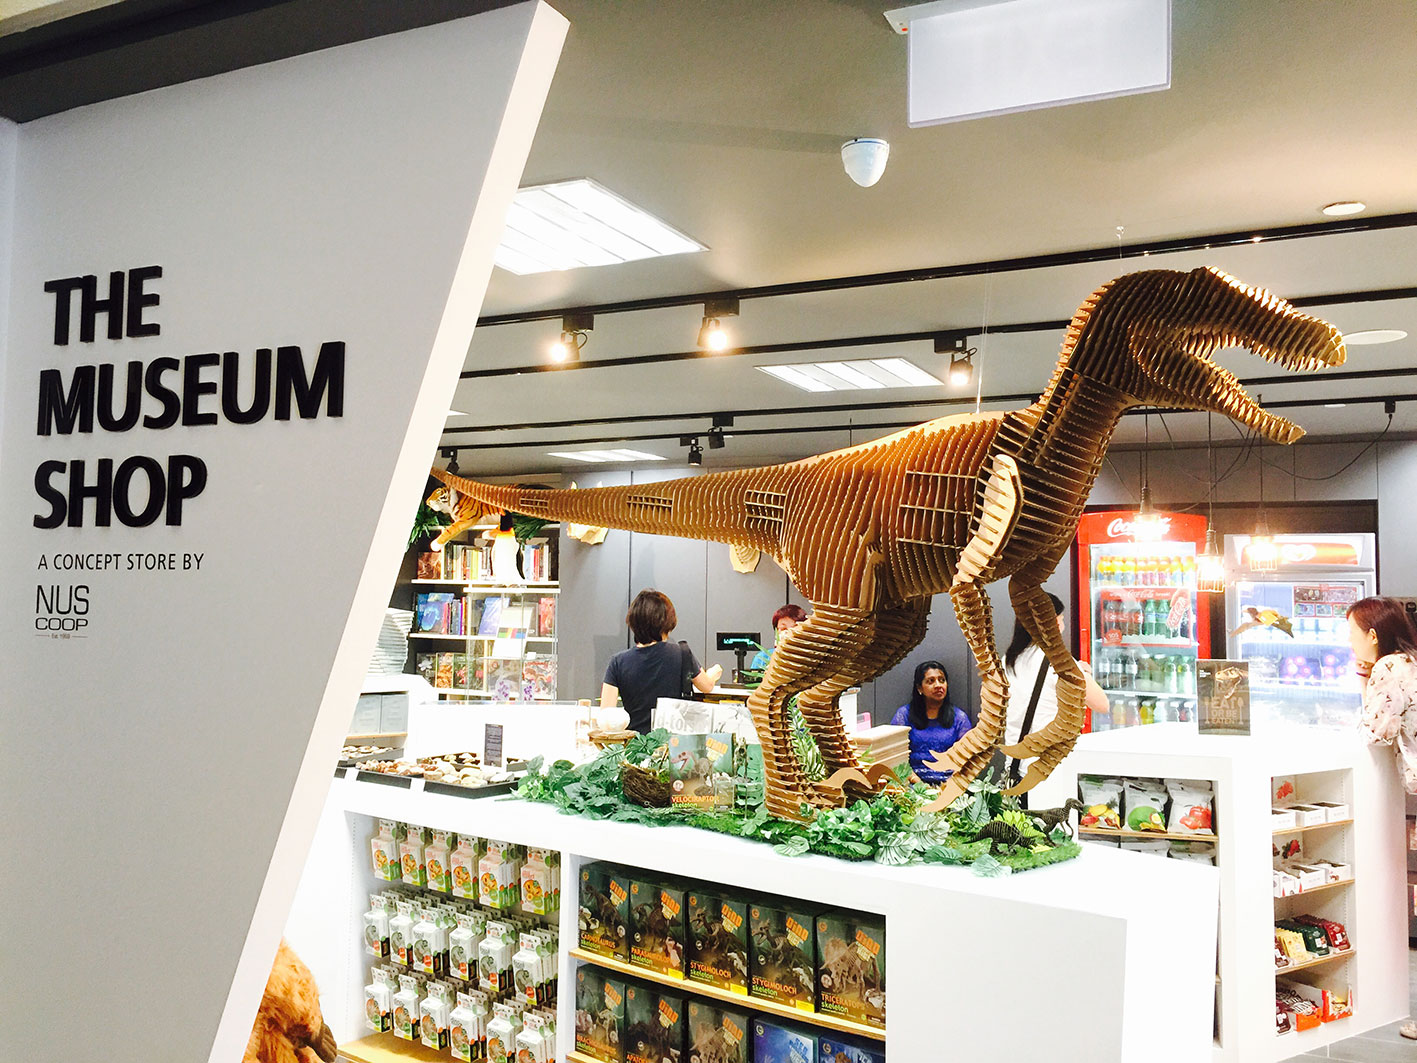 The-Museum-Shop-1.jpg